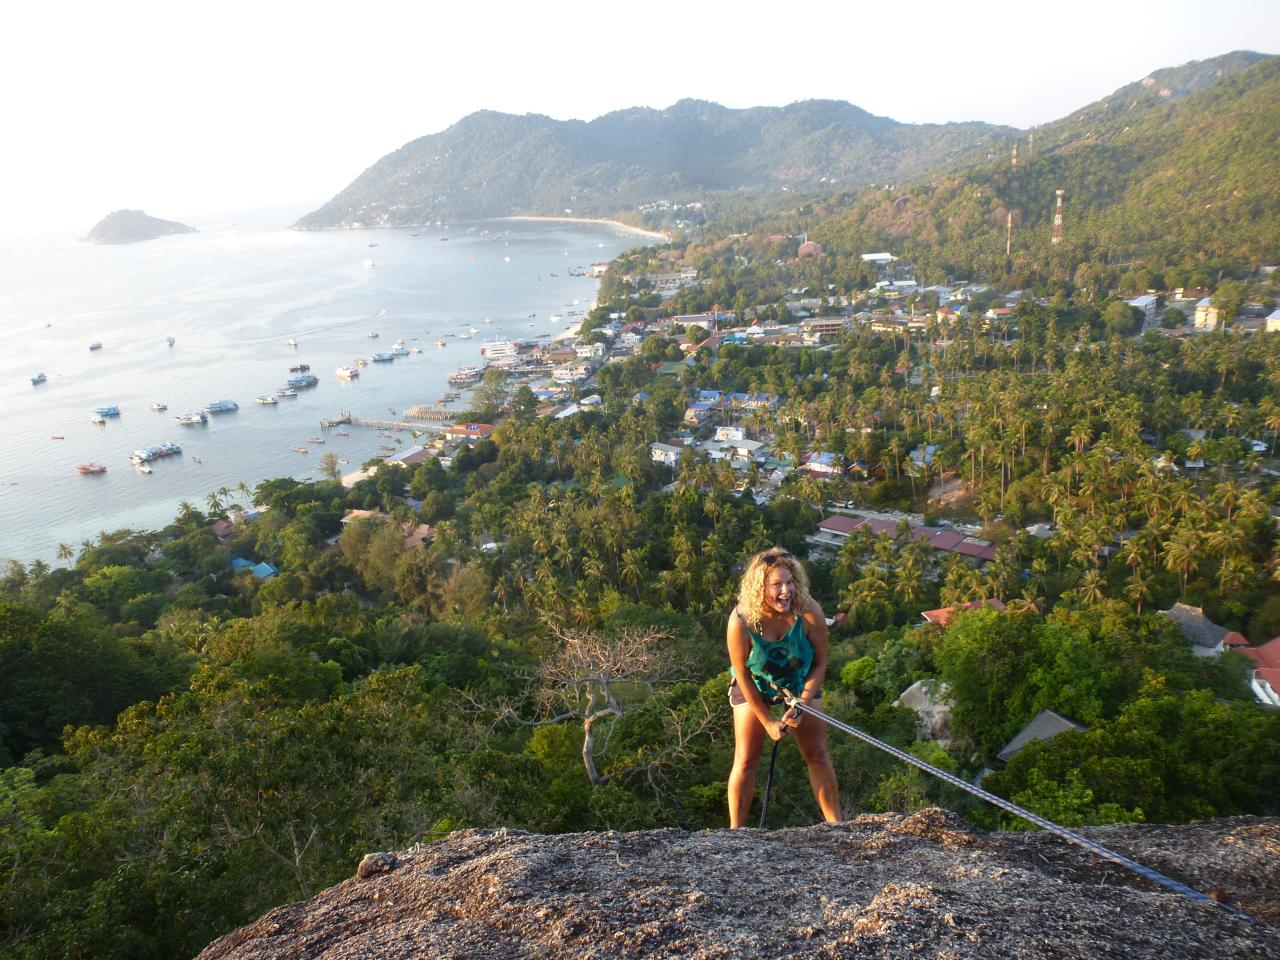 Onsight Climbing koh tao's picture